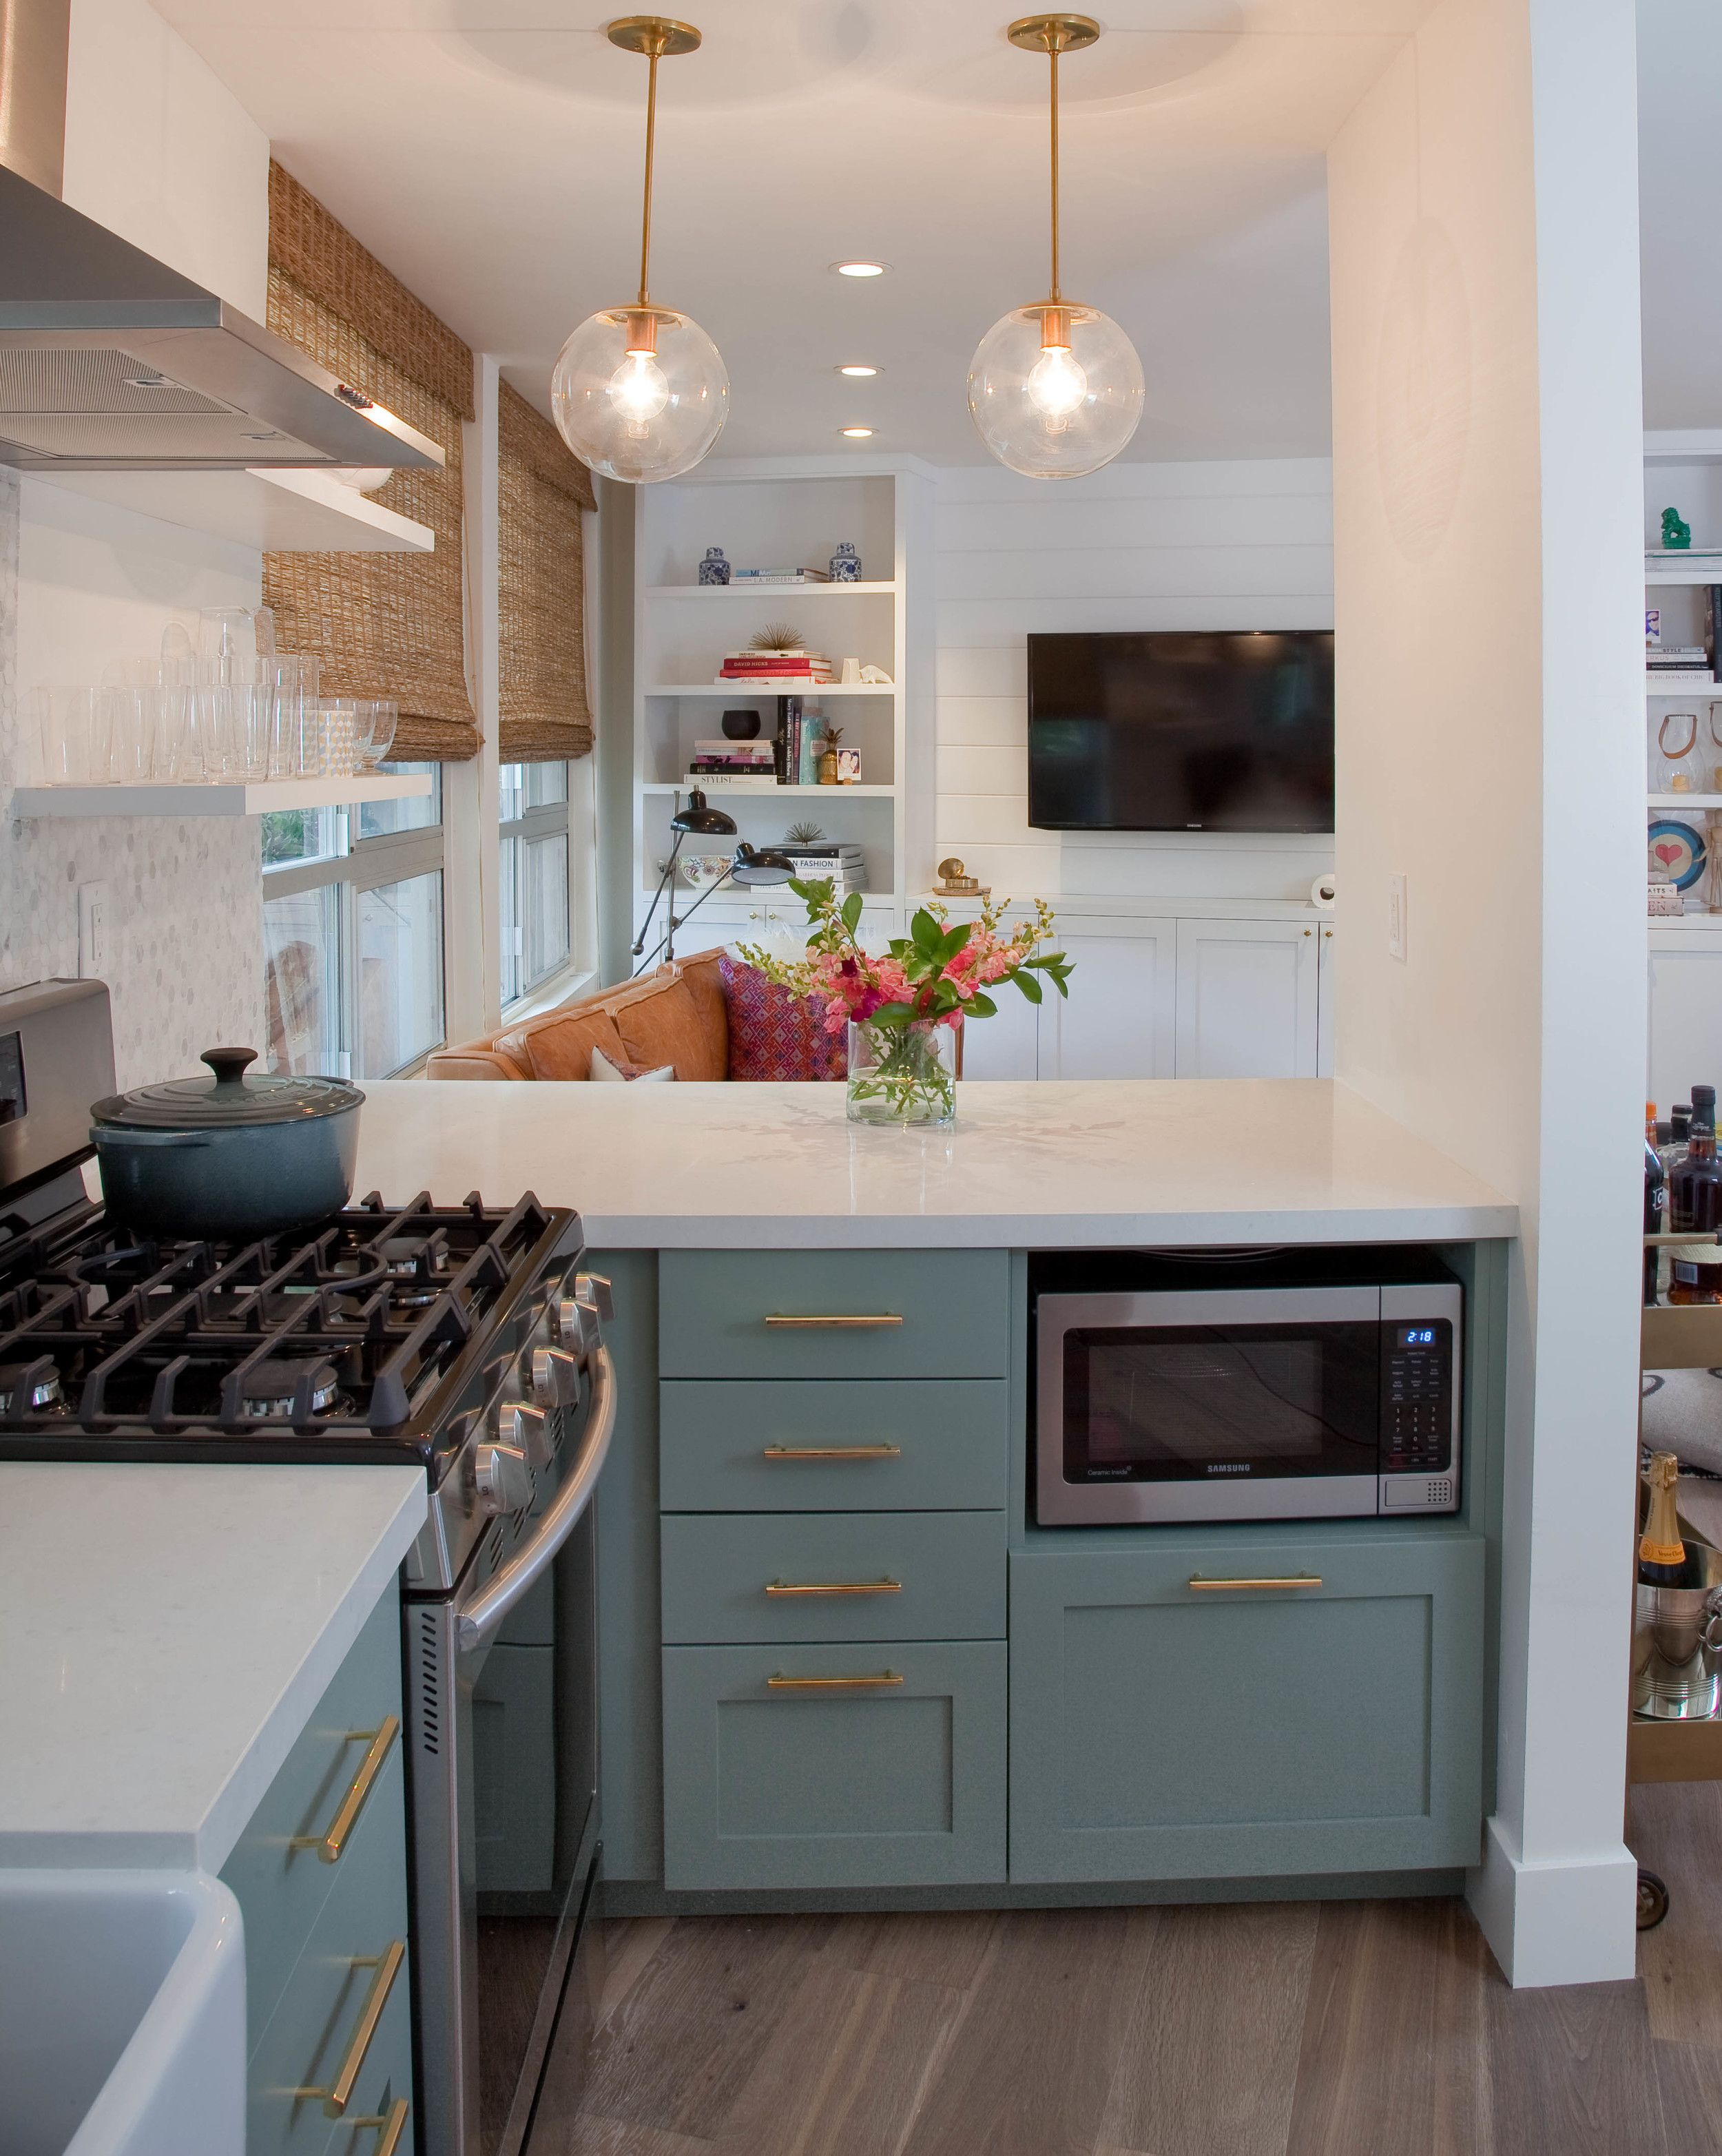 Beau Green, White And Brass Kitchen Remodel.